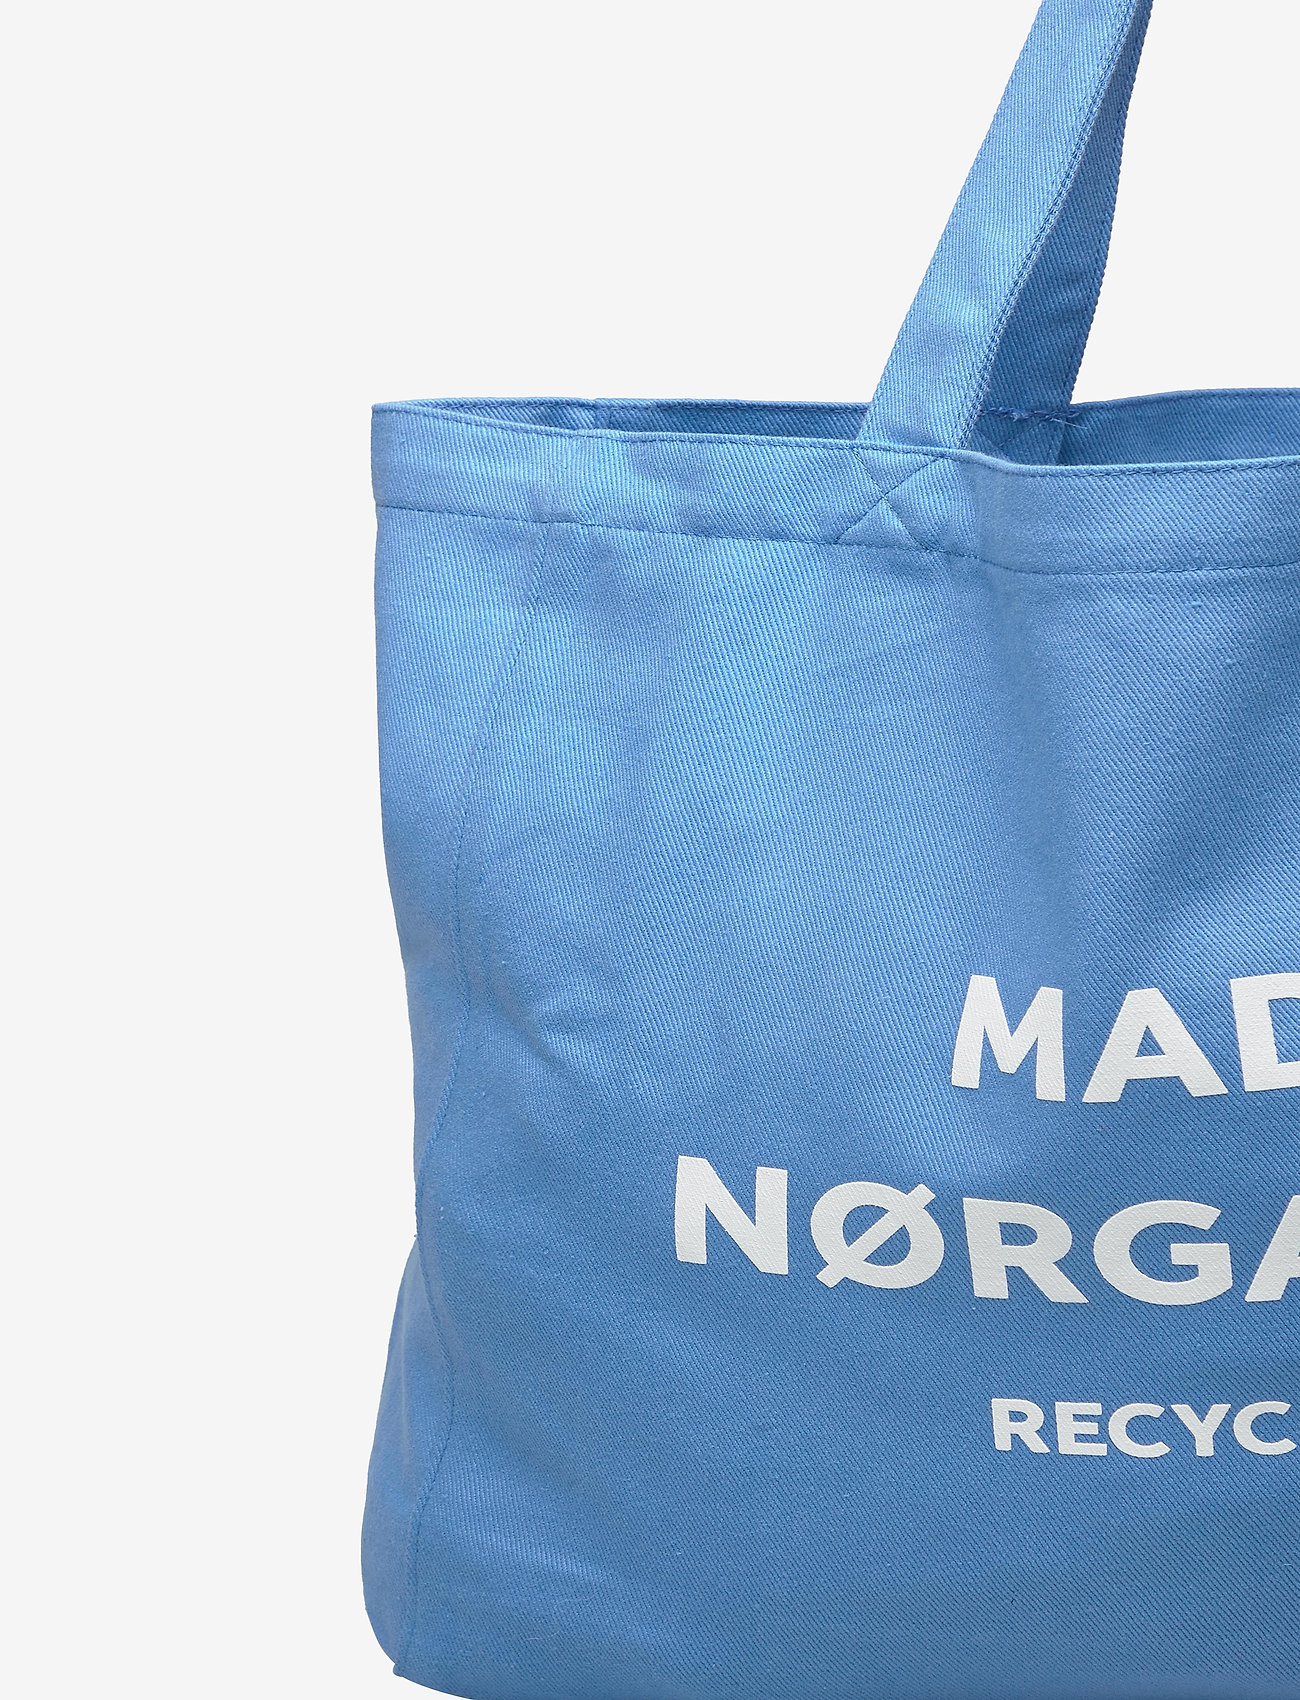 Mads Nørgaard Recycled Boutique Athene - Torby na zakupy BLUE/WHITE - Torby